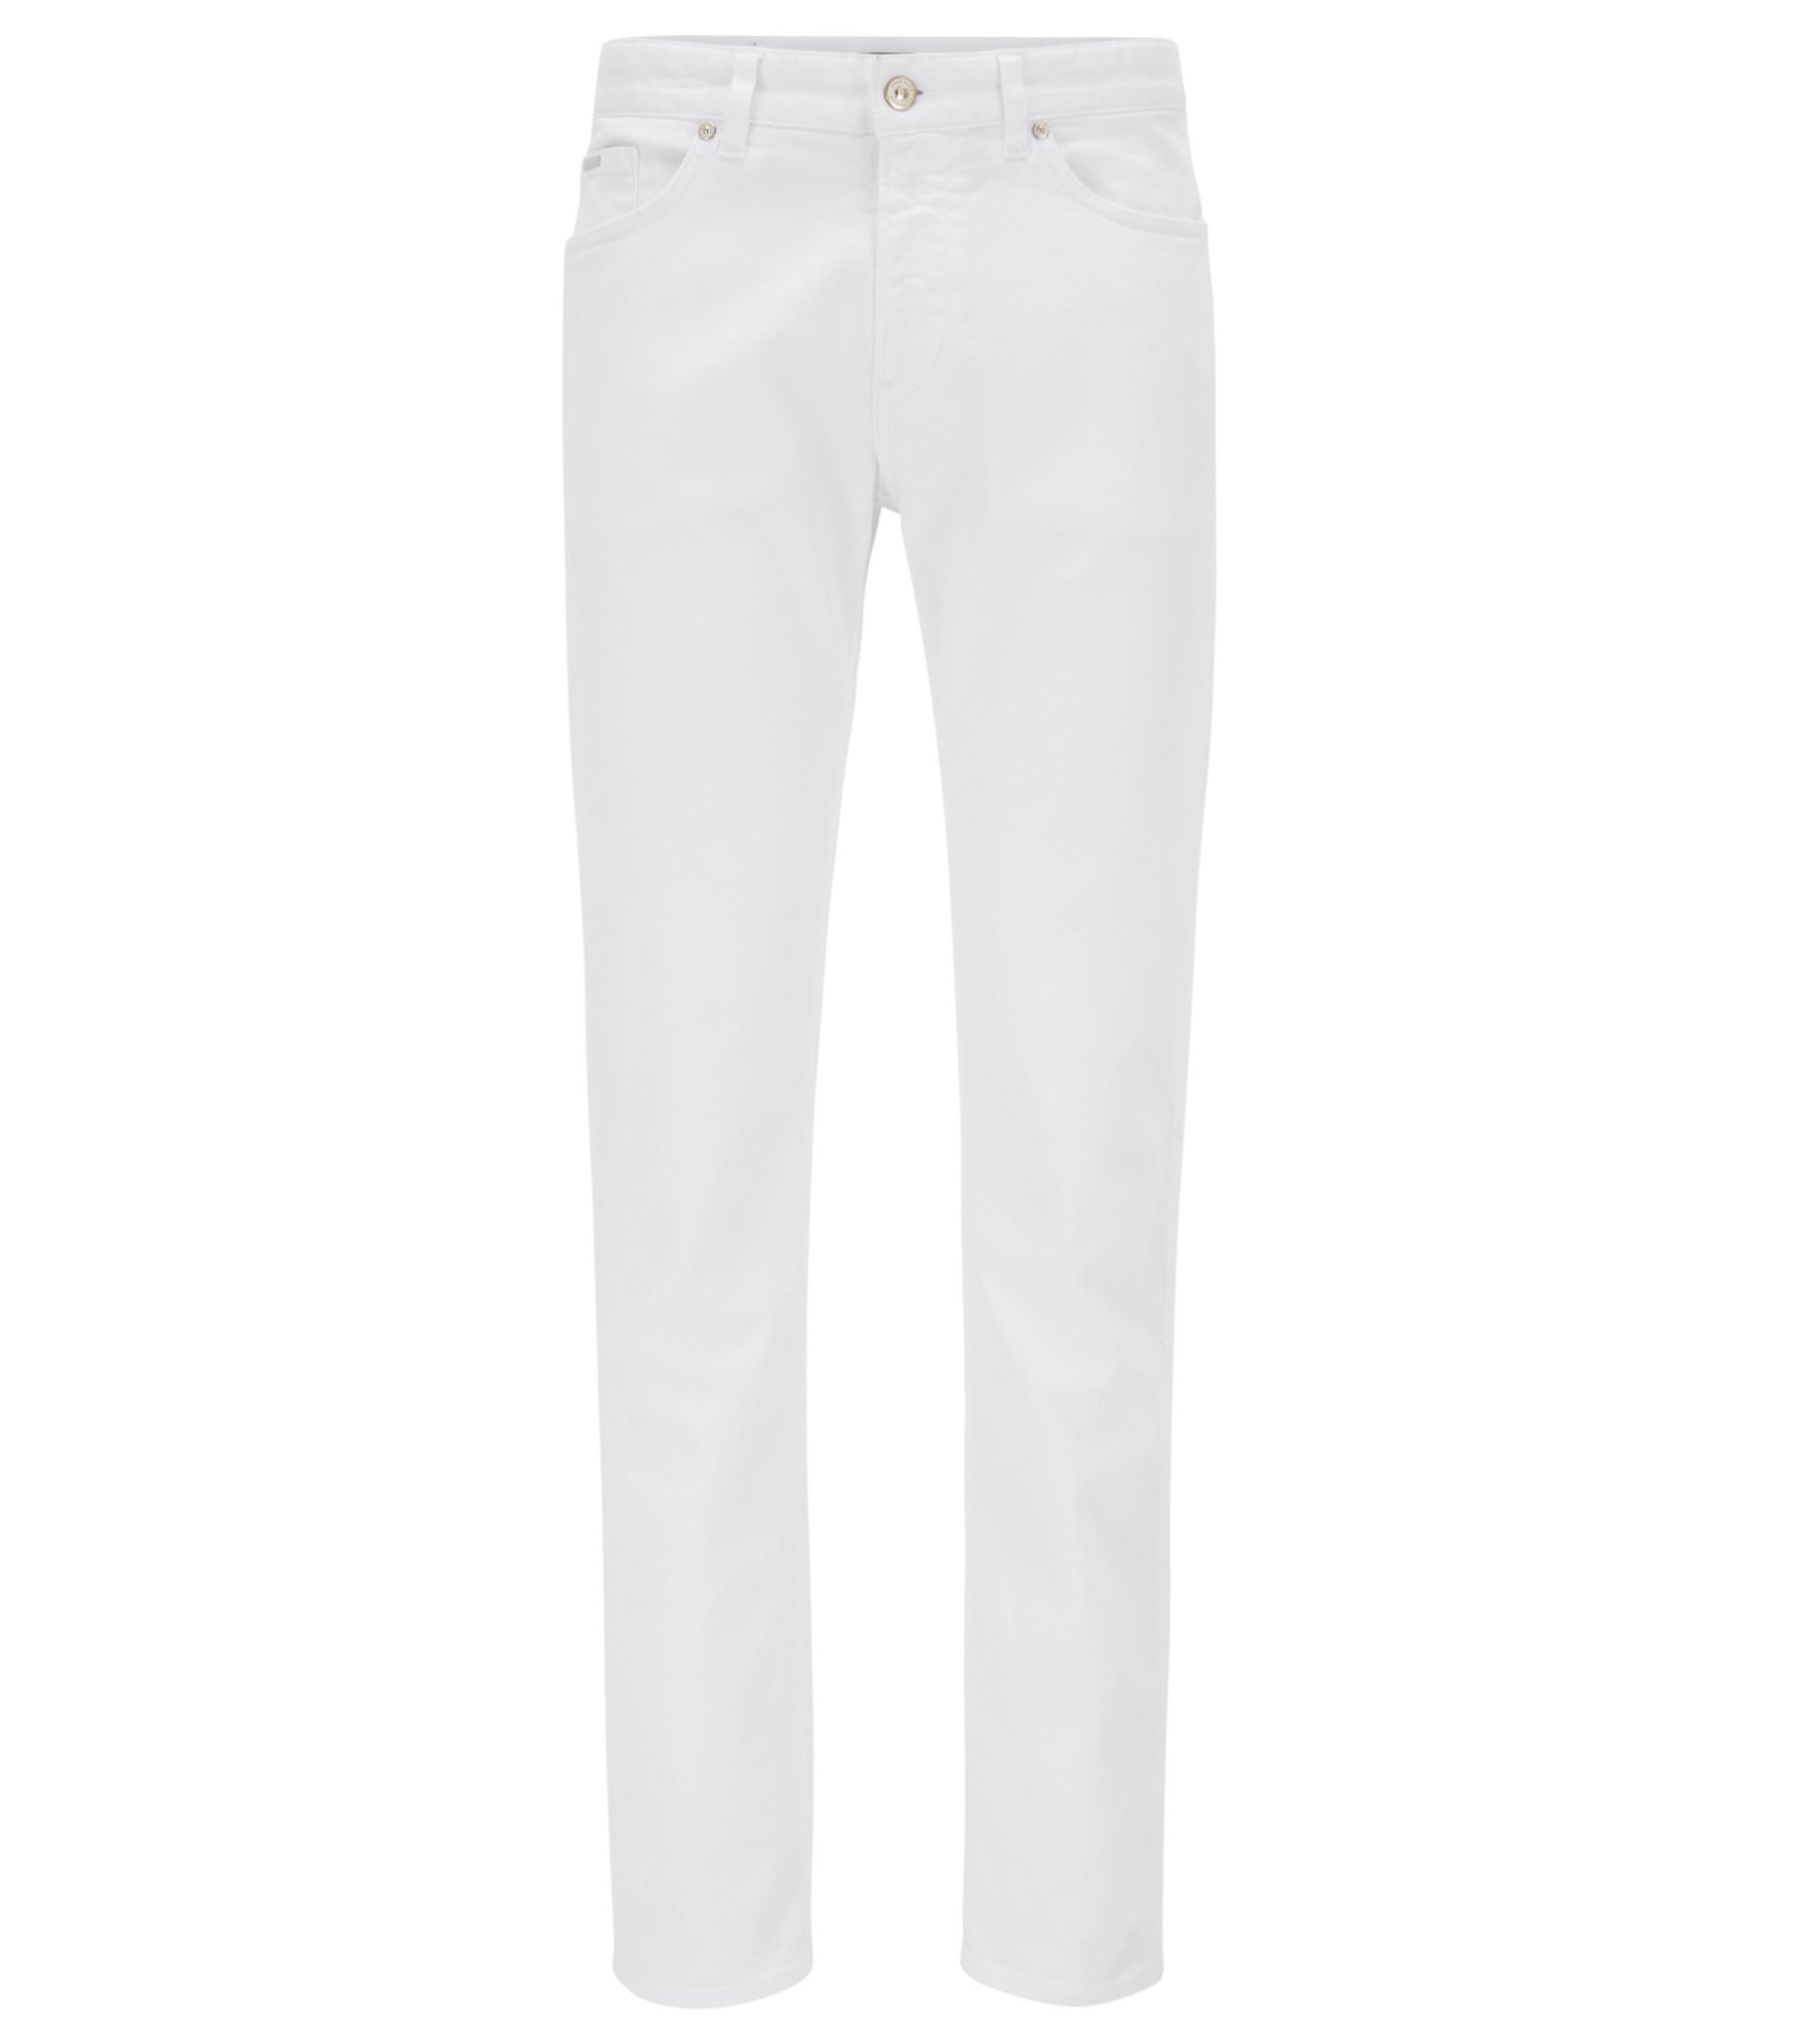 Stretch Cotton Jean, Slim Fit | Delaware, Natural